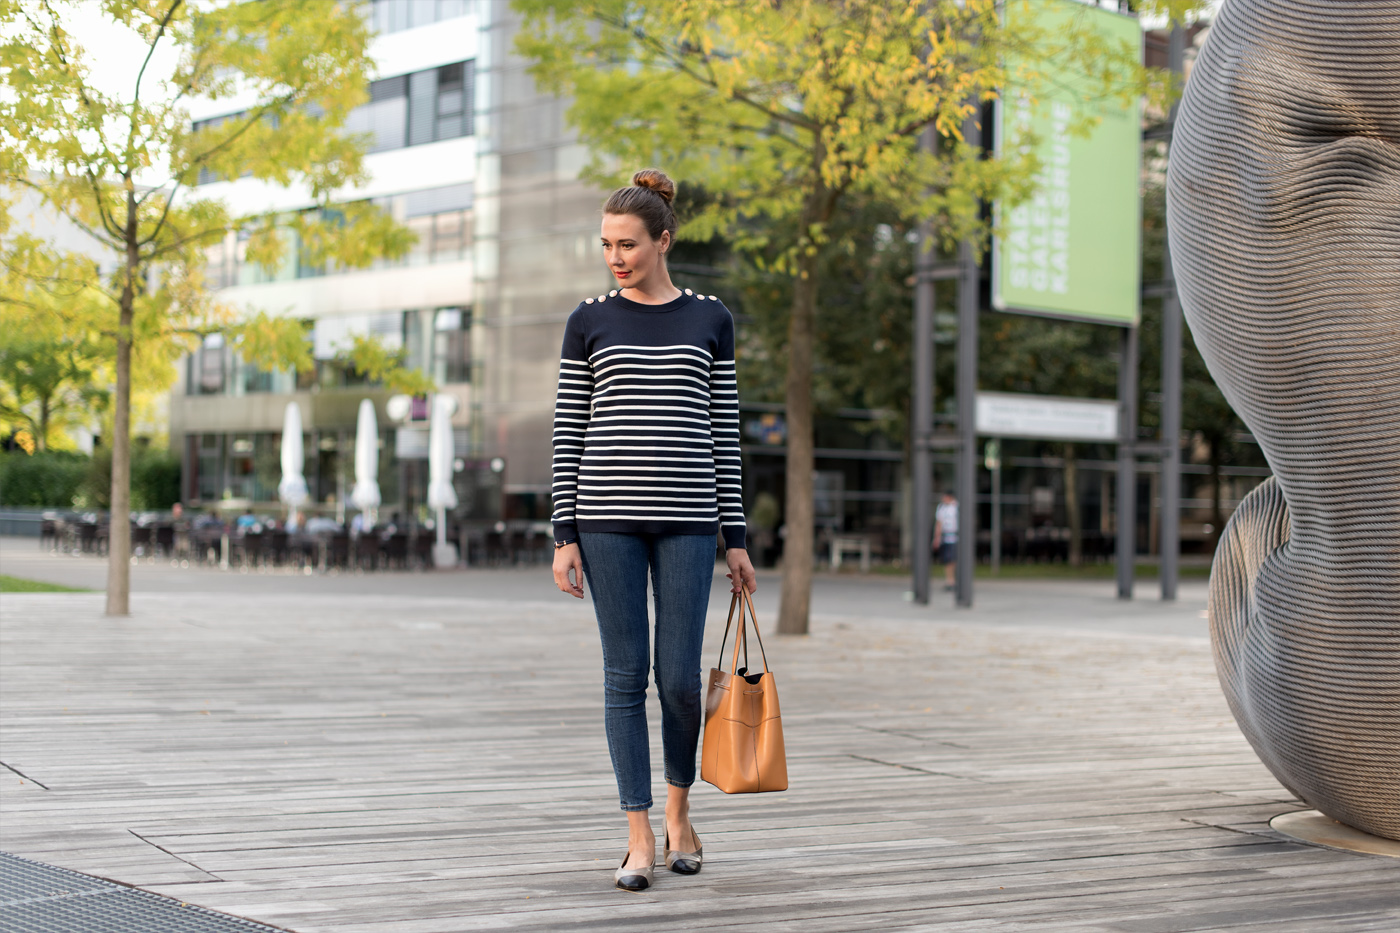 petit-bateau-sweater-zara-ballerina-tory-burch-bucket-bag-fashionblog-4